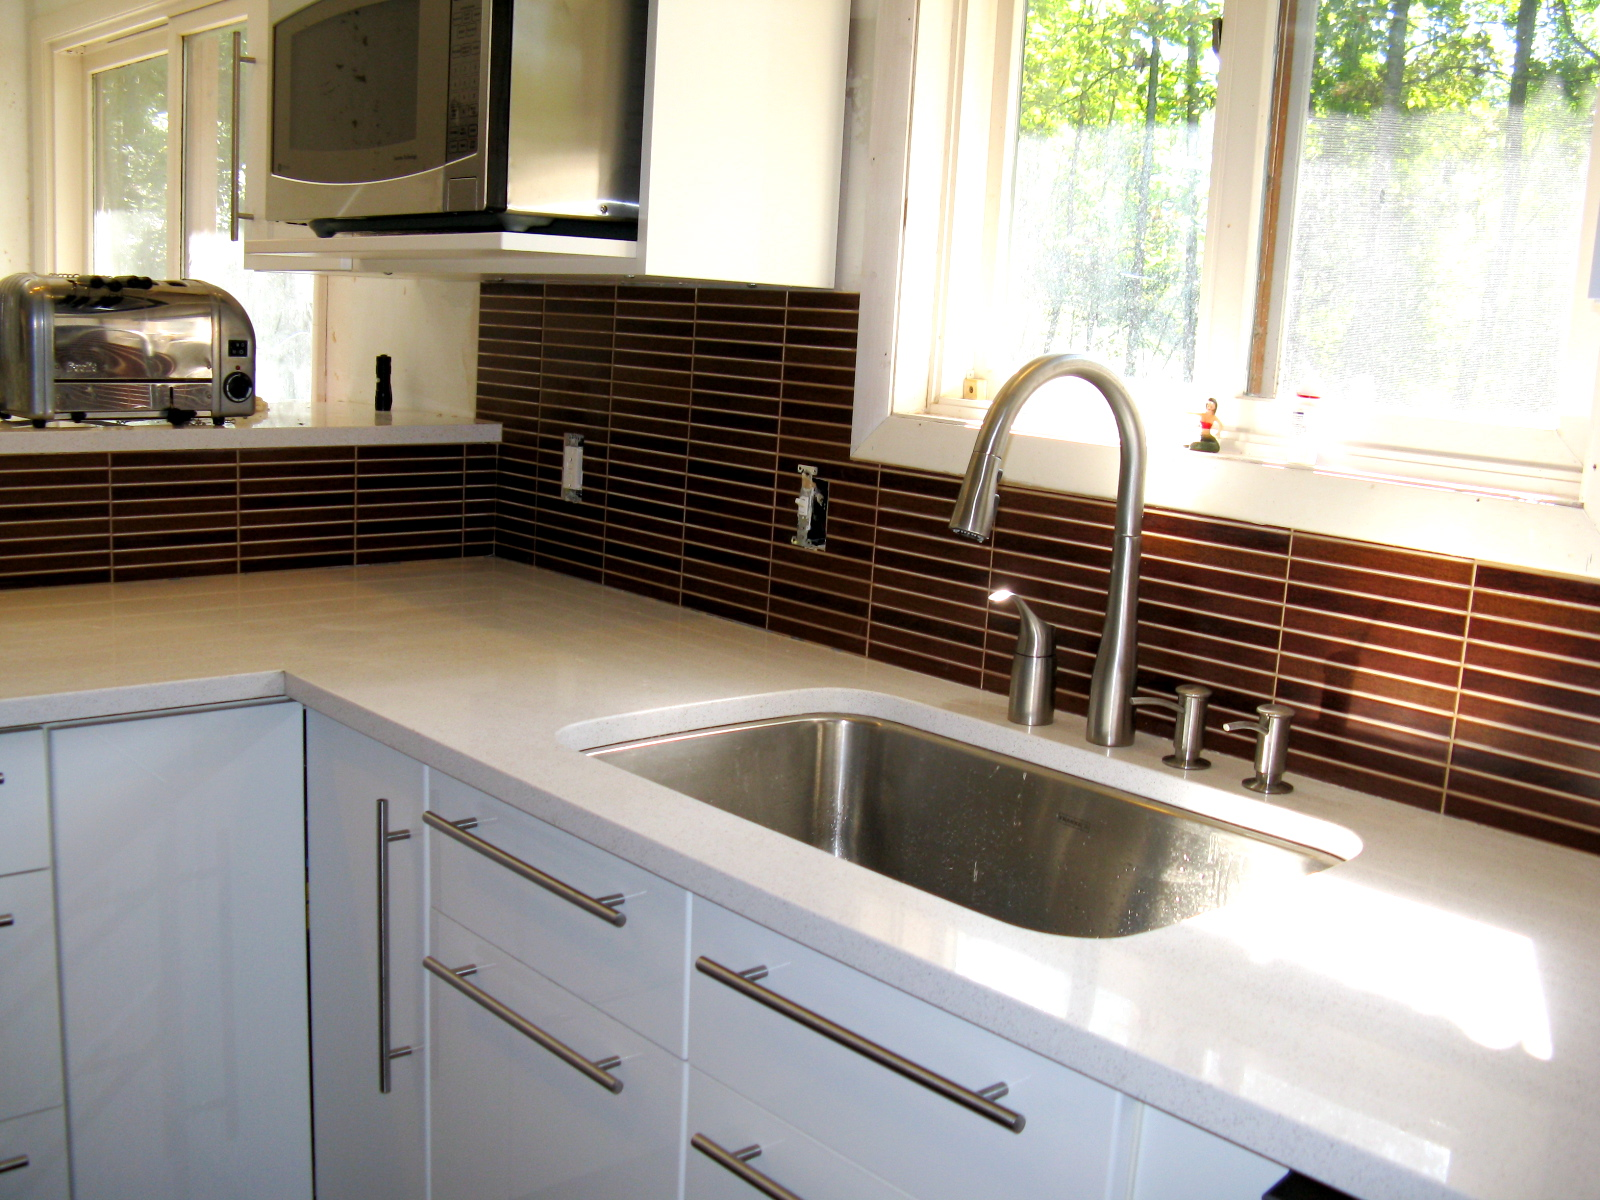 with refrigerator wooden countertops kitchen island cabinets metal minimalist gray table and ikea chrome originalviews